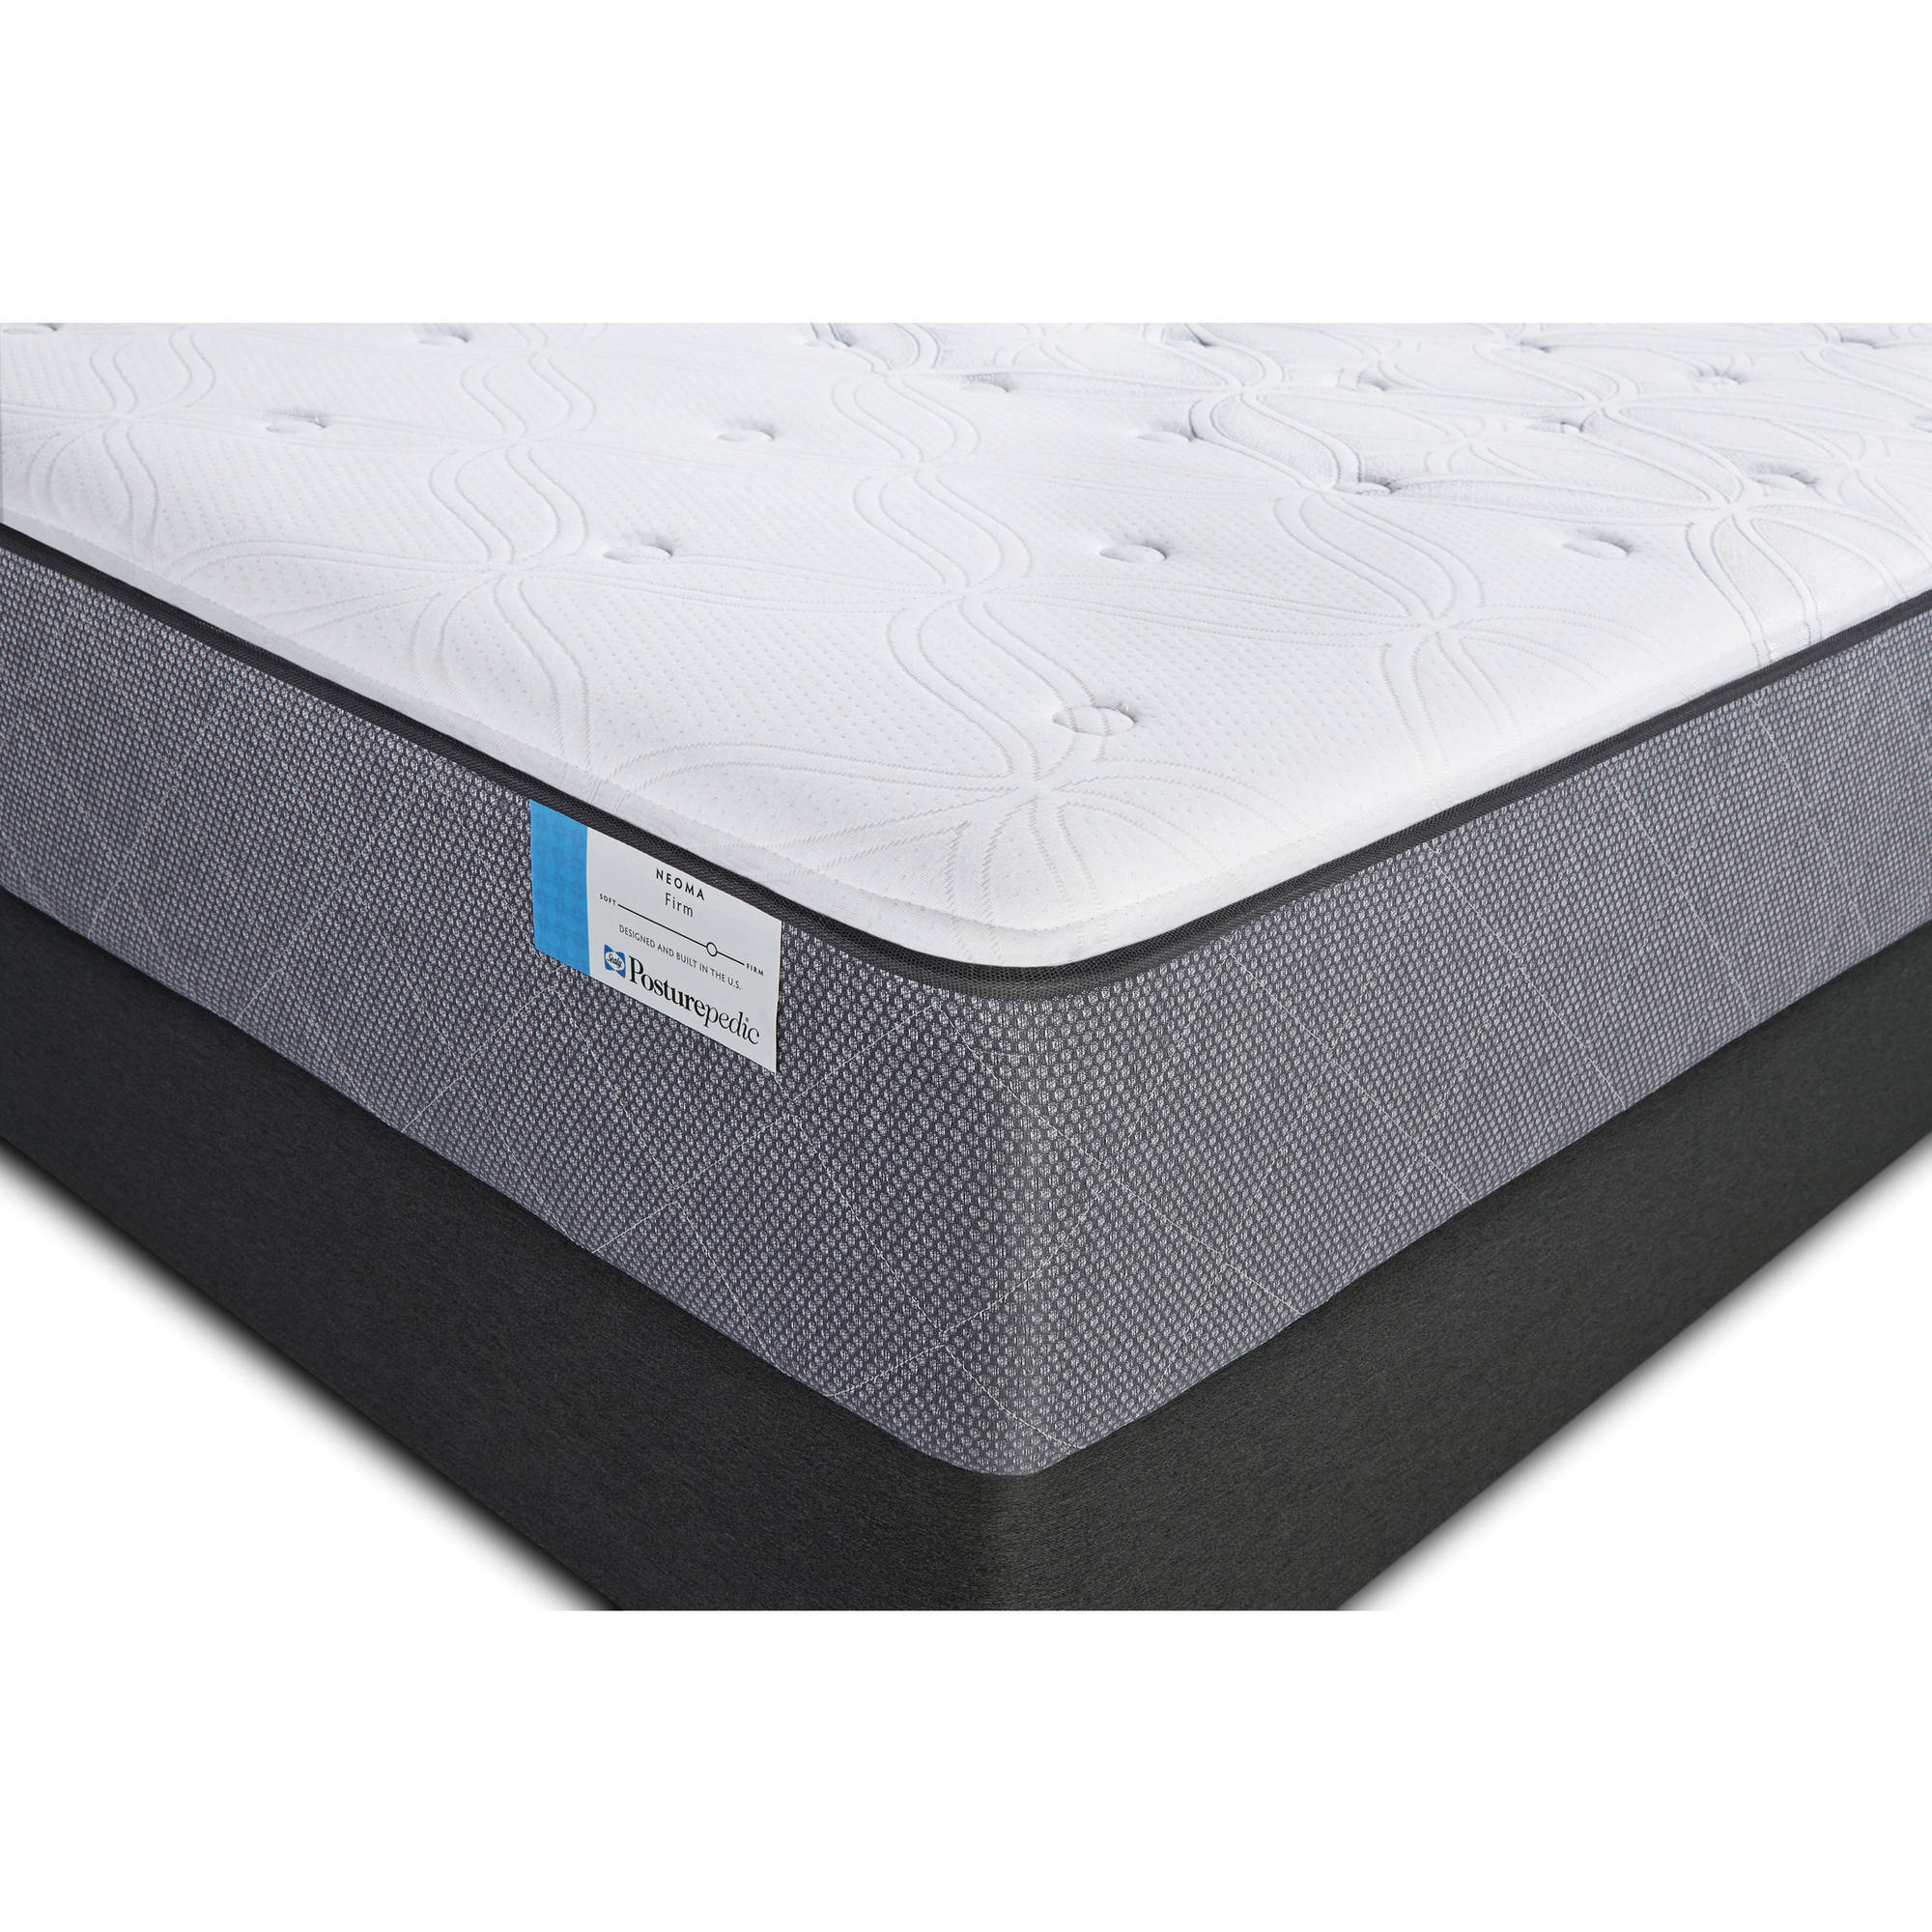 pillowtop reviews mattress com posturepedic model goodbed hillshire picture sealy